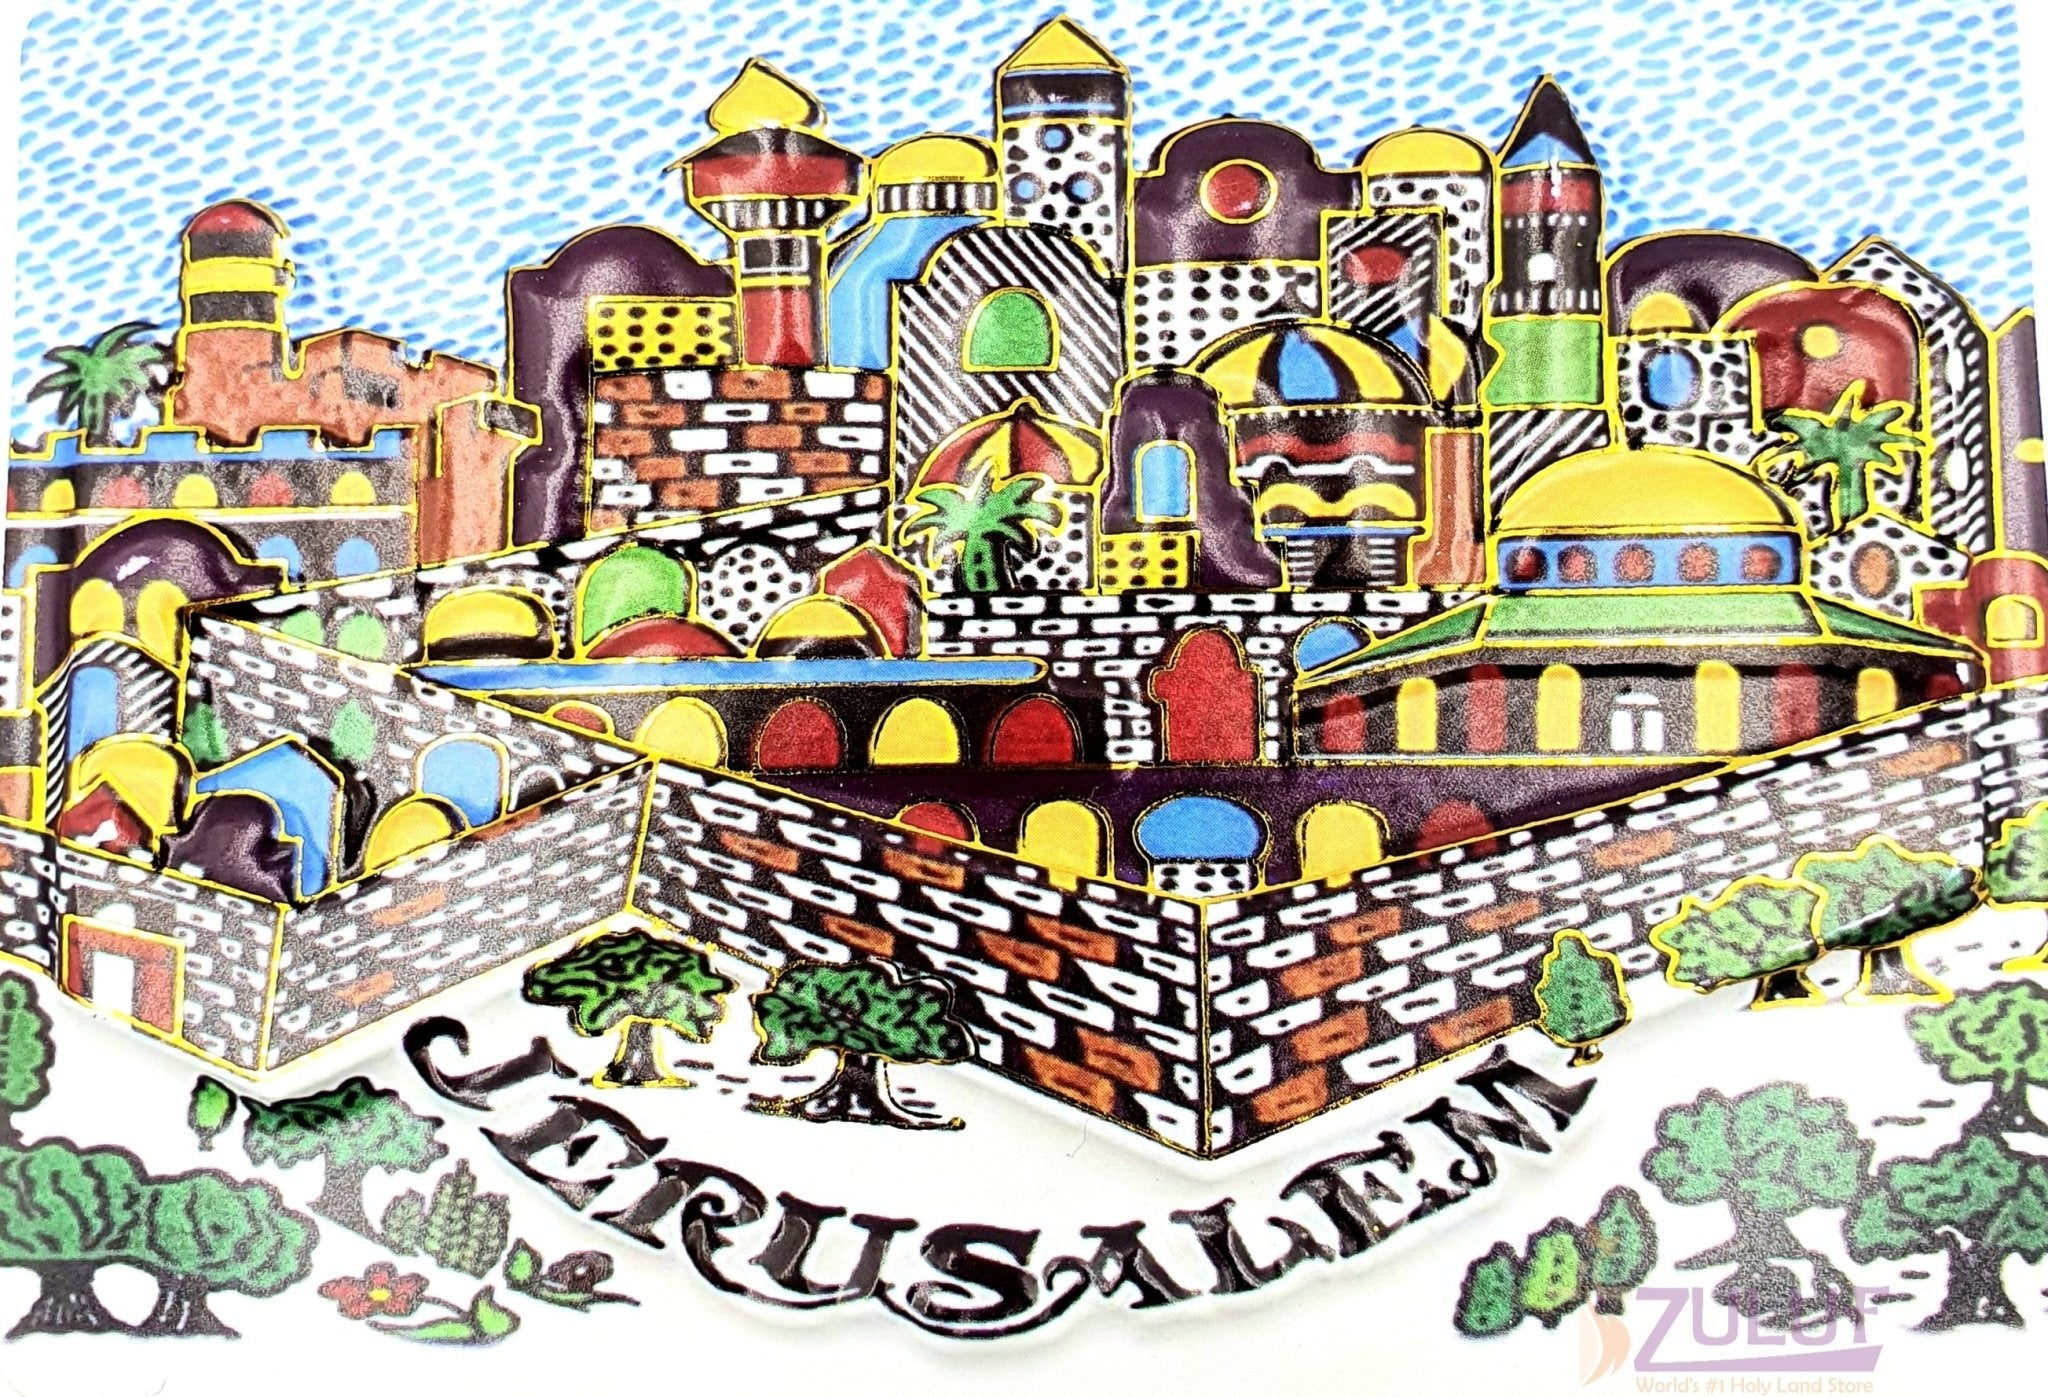 3d Photo Wall Of Old City Jeruslem Magnet Mag117 - Zuluf